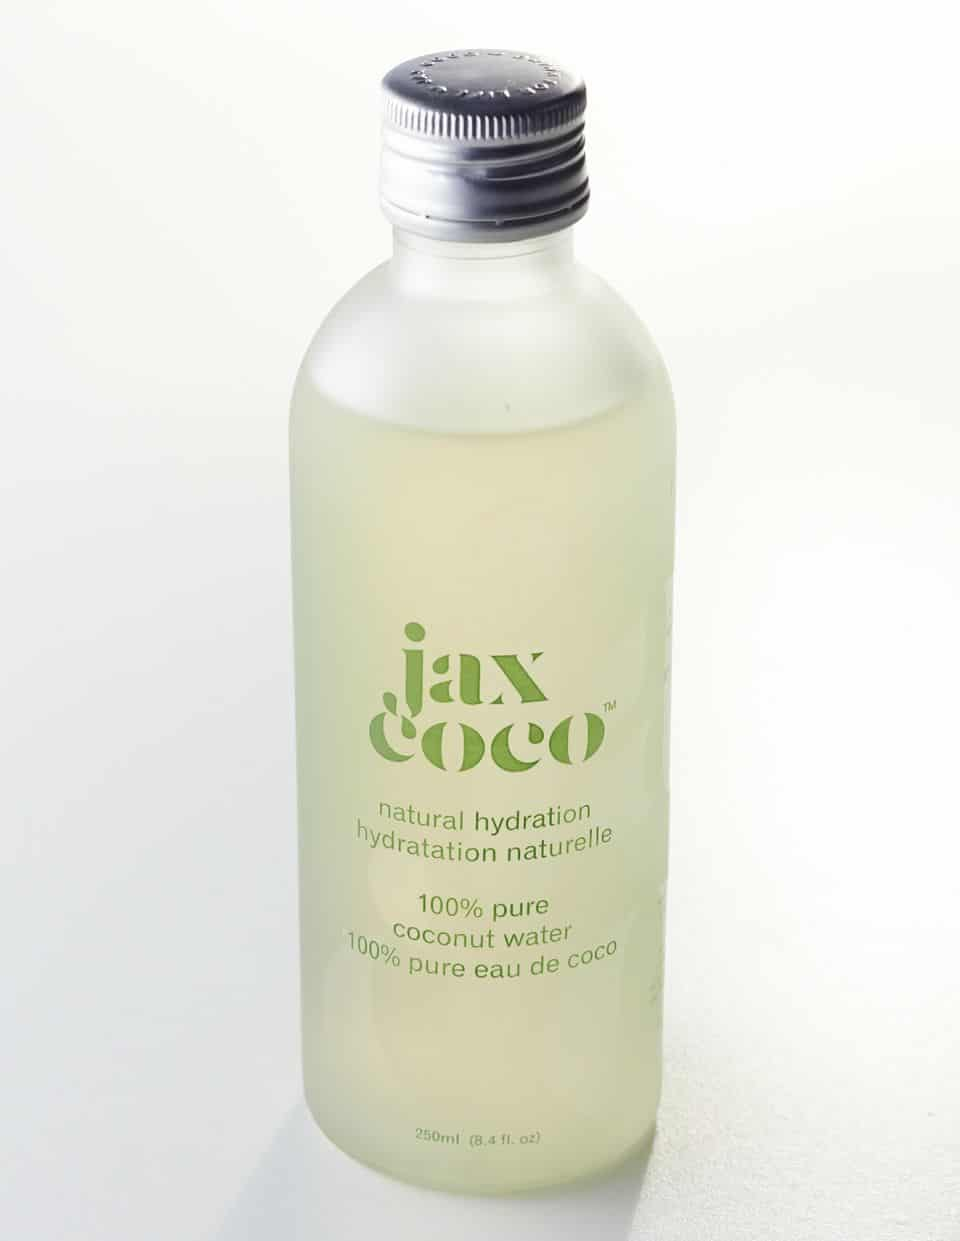 jax coco - white background